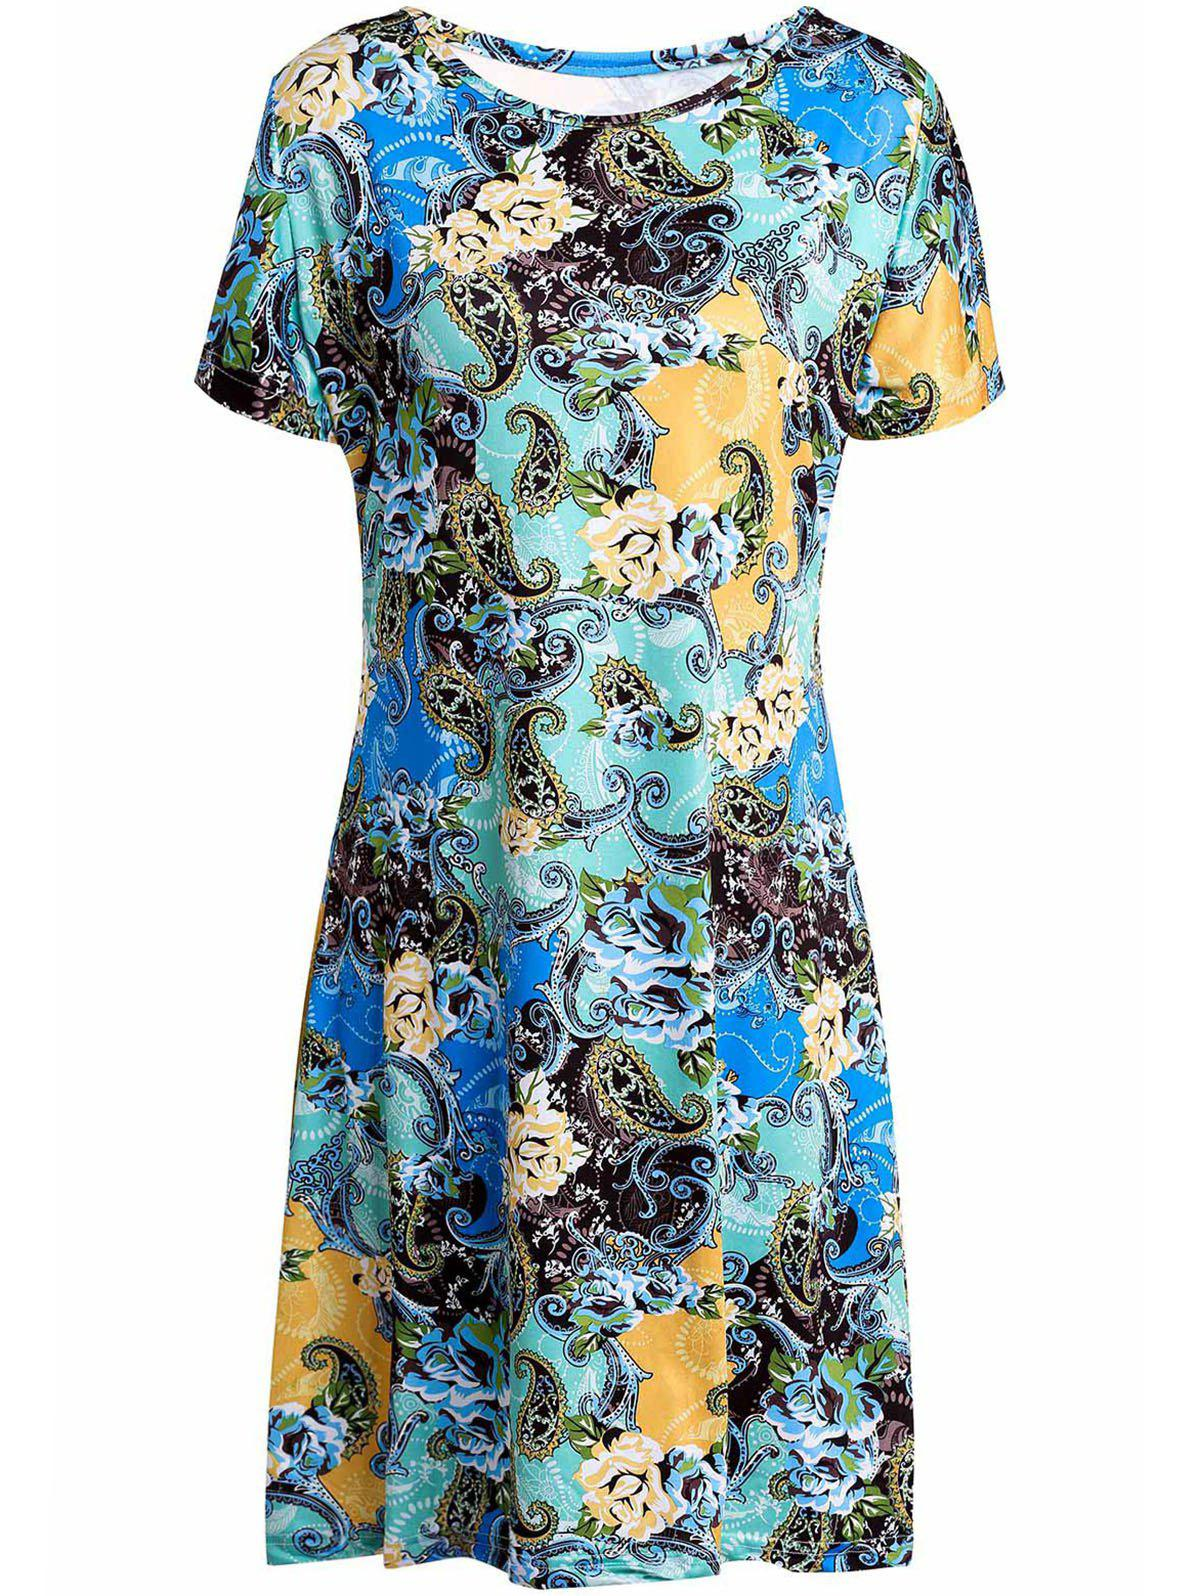 Stylish Scoop Collar Short Sleeve Plus Size Printed Women's Dress - COLORMIX 2XL